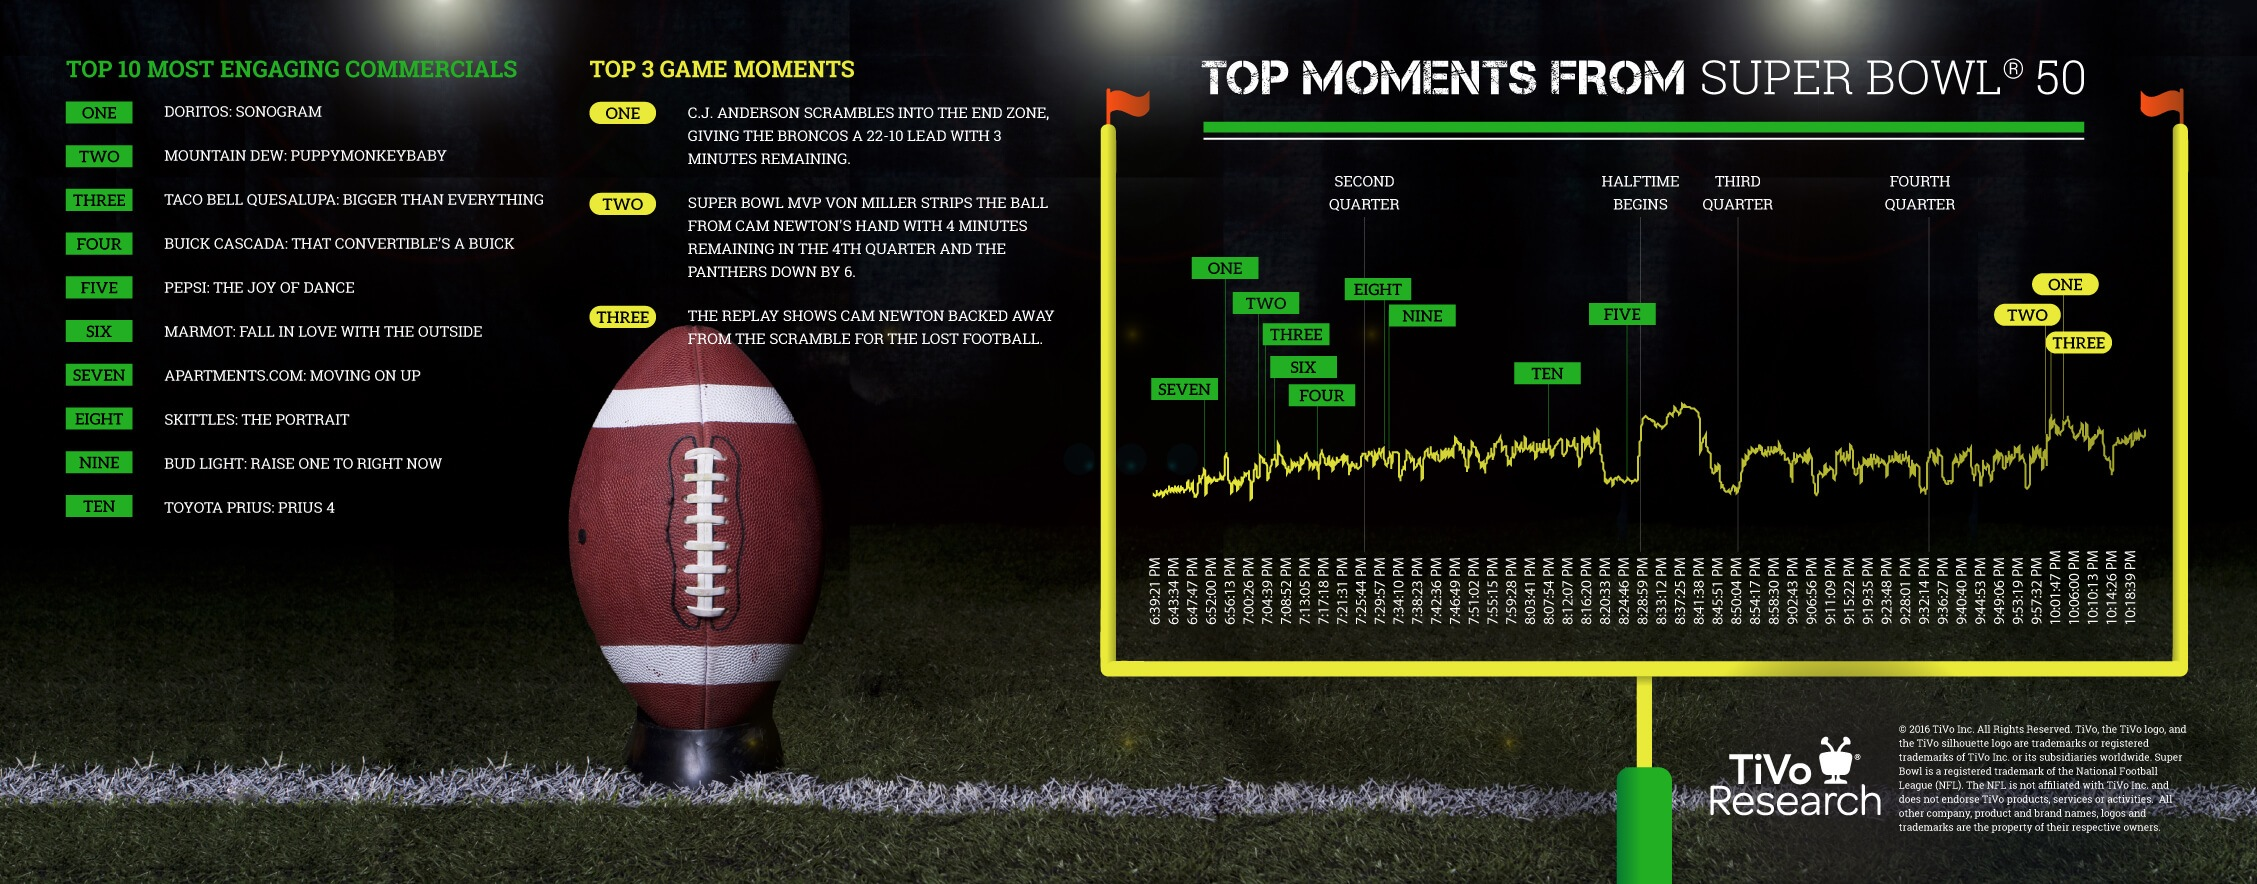 super bowl 50 top moments infograph